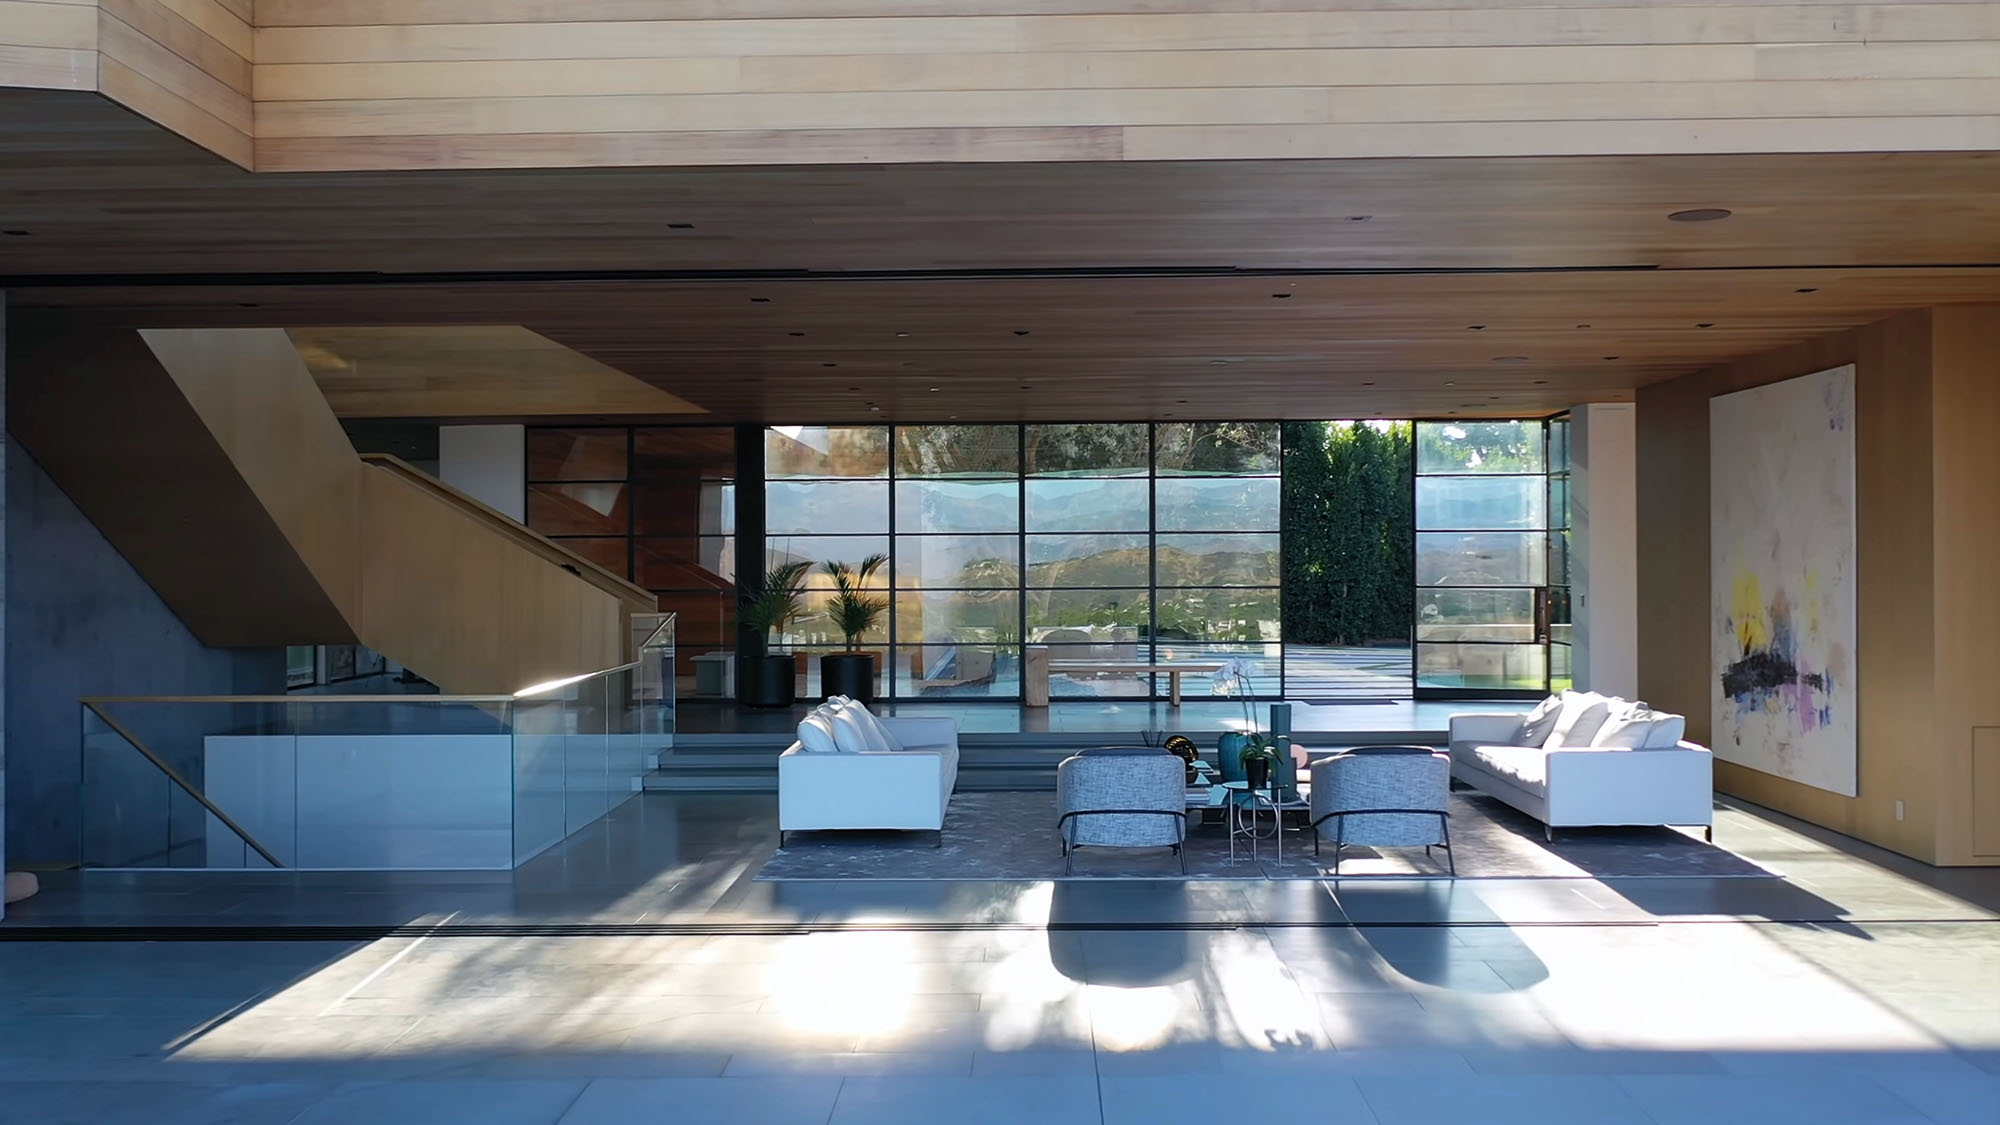 Modern living room design with walls of glass that recess to expose indoor outdoor living.